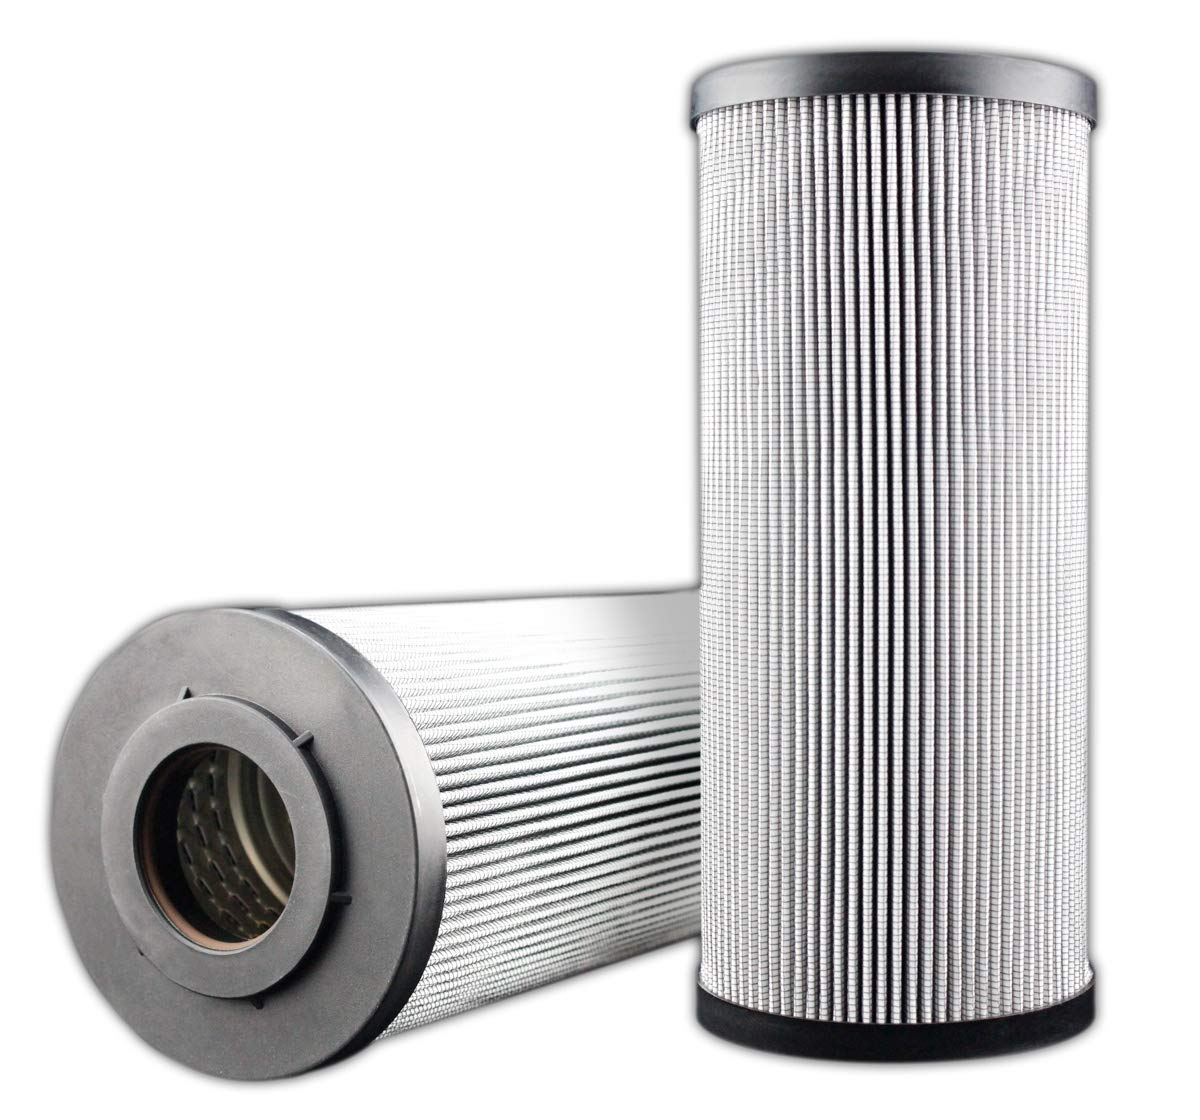 WIX 557840 Heavy Duty Replacement Hydraulic Filter Element from Big Filter